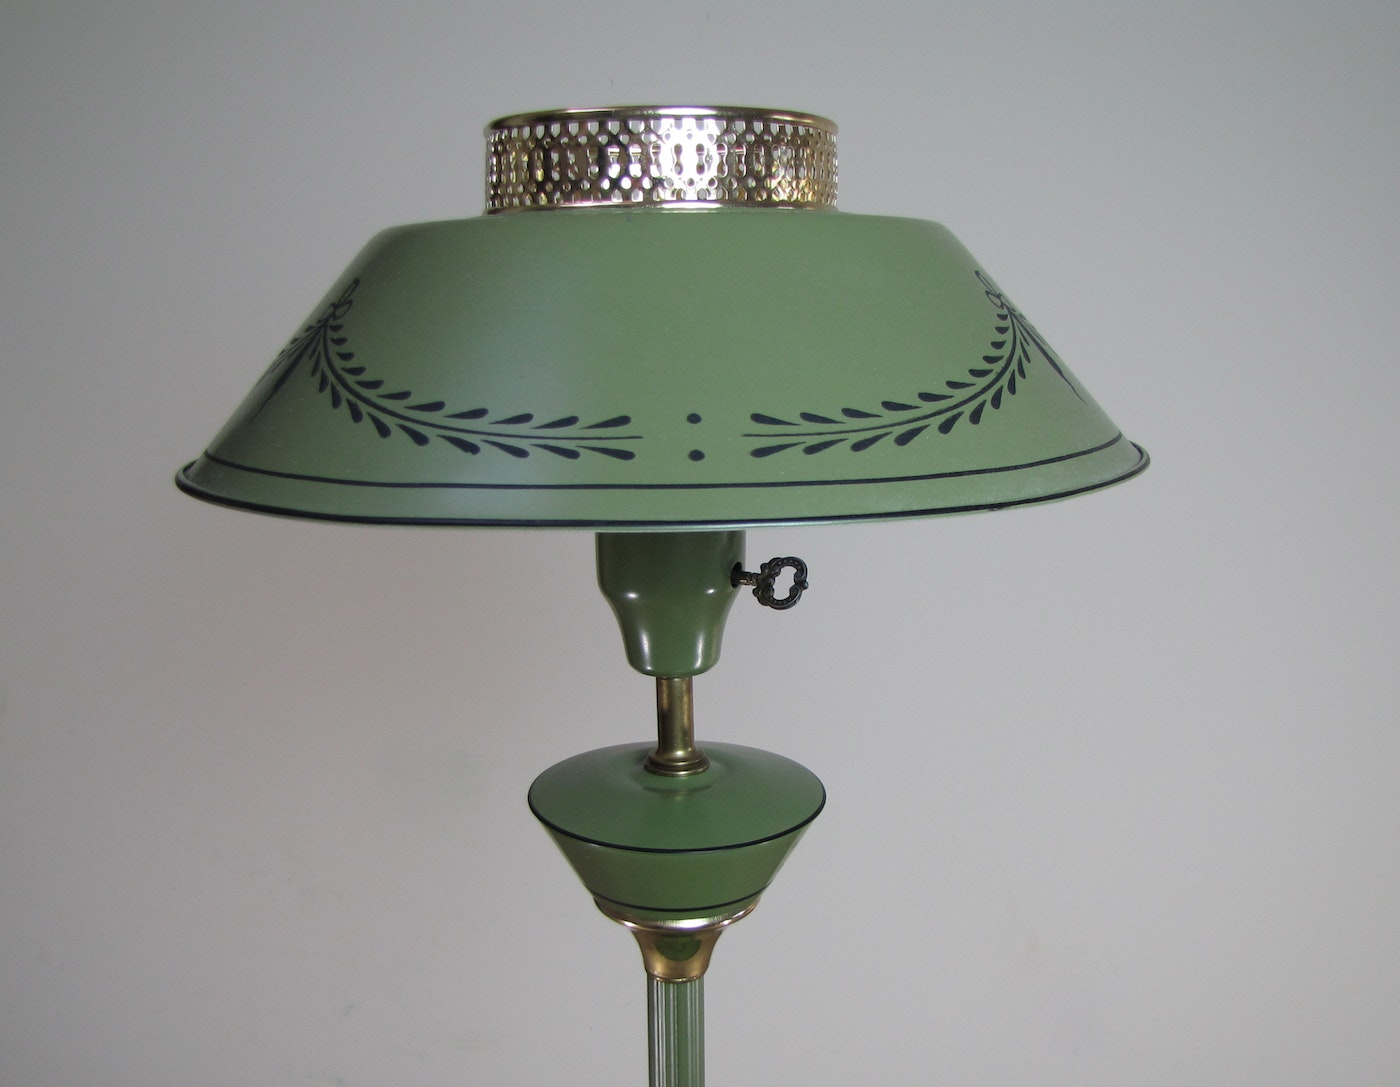 Vintage Tole Floor Lamp With Tray Table Ebth